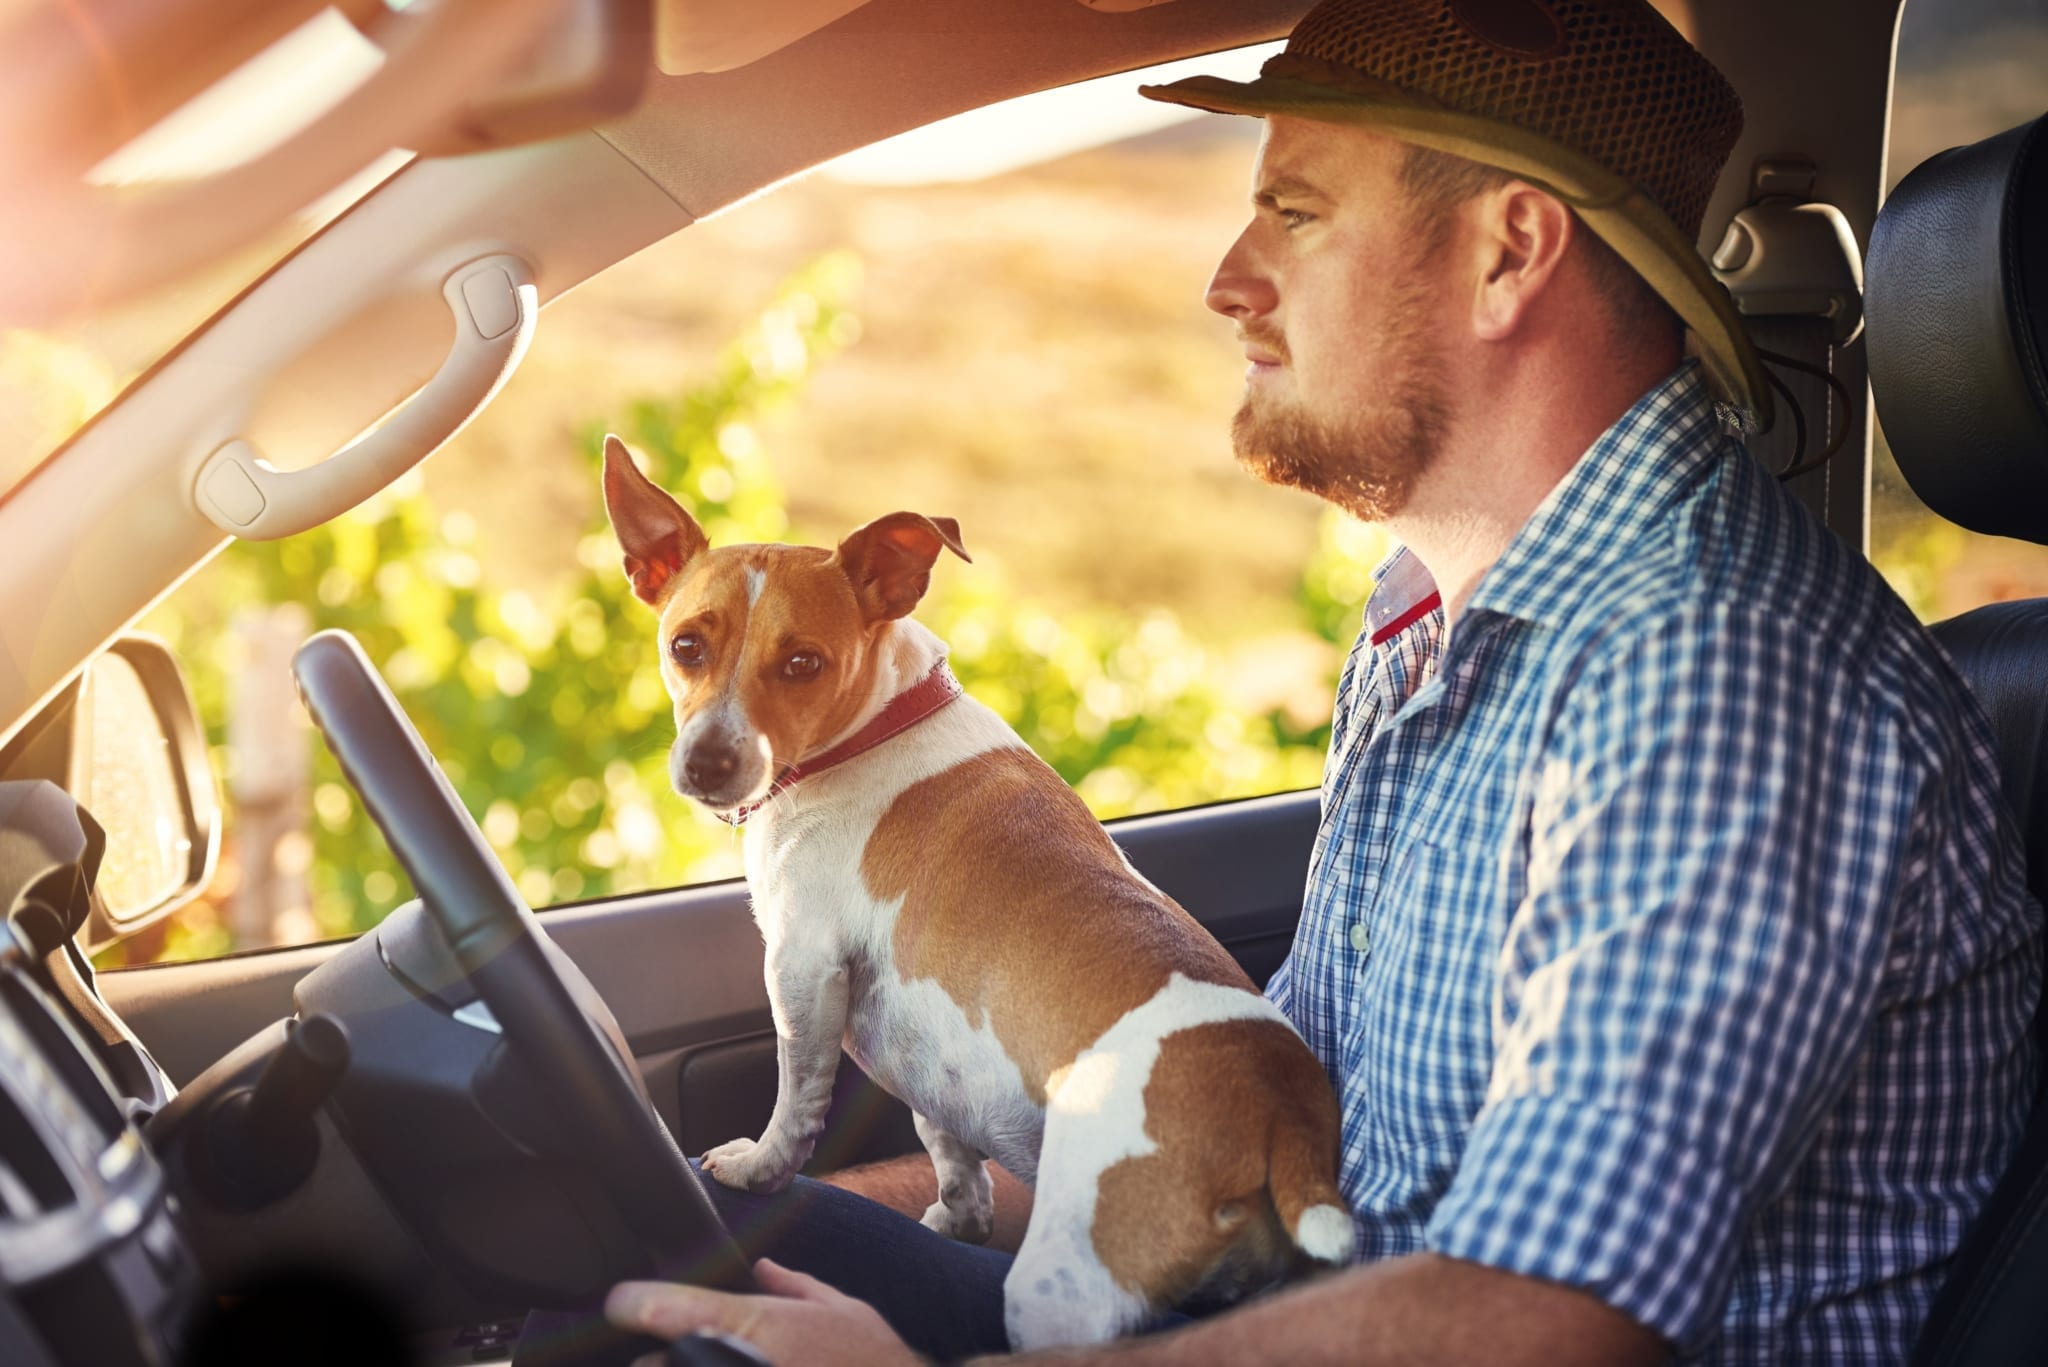 Shot of a man and his dog driving out in the countryside